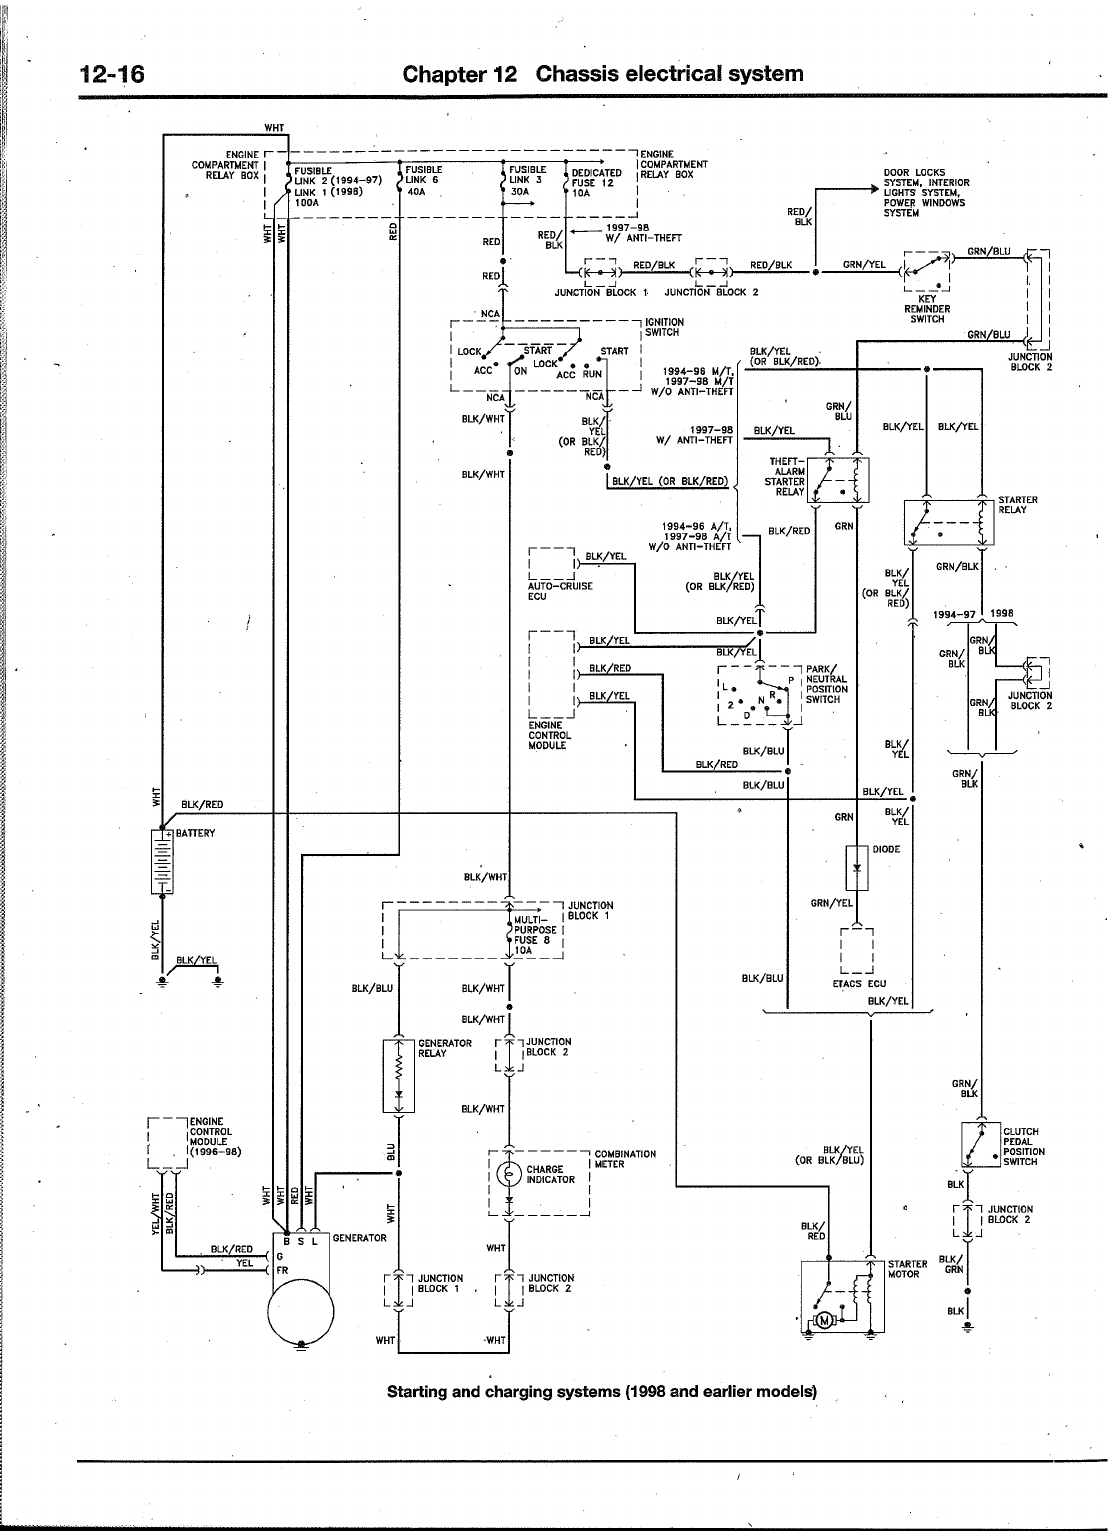 Mitsubishi Wiring Diagrams Schematics Diagram Alfa Romeo Galant 1994 2003 Misc Document Pdf